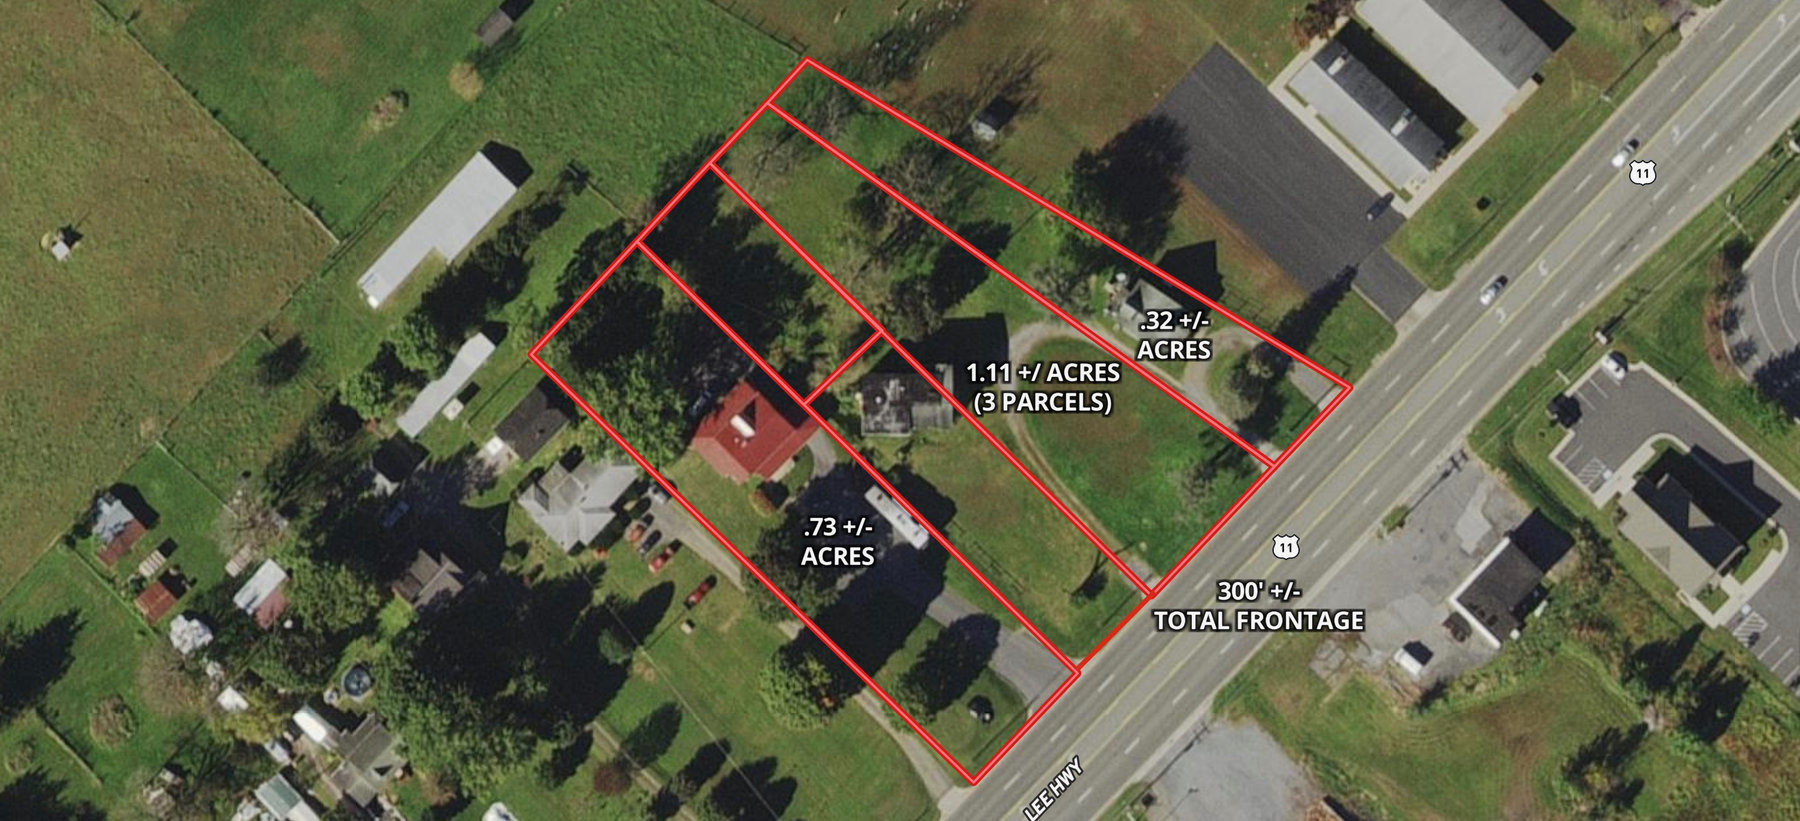 Image for Combination of #1, #2, and #3. -- .73 +/- Acres w/2 Story Structure; 1.11 +/- Acres w/4 BR/2 BA Structure; and .32 +/- Acres w/3 BR/1 BA Brick Structure Fronting Rt. 11 (Lee Hwy.) in Augusta County, VA--SELLING to the HIGHEST BIDDER!!